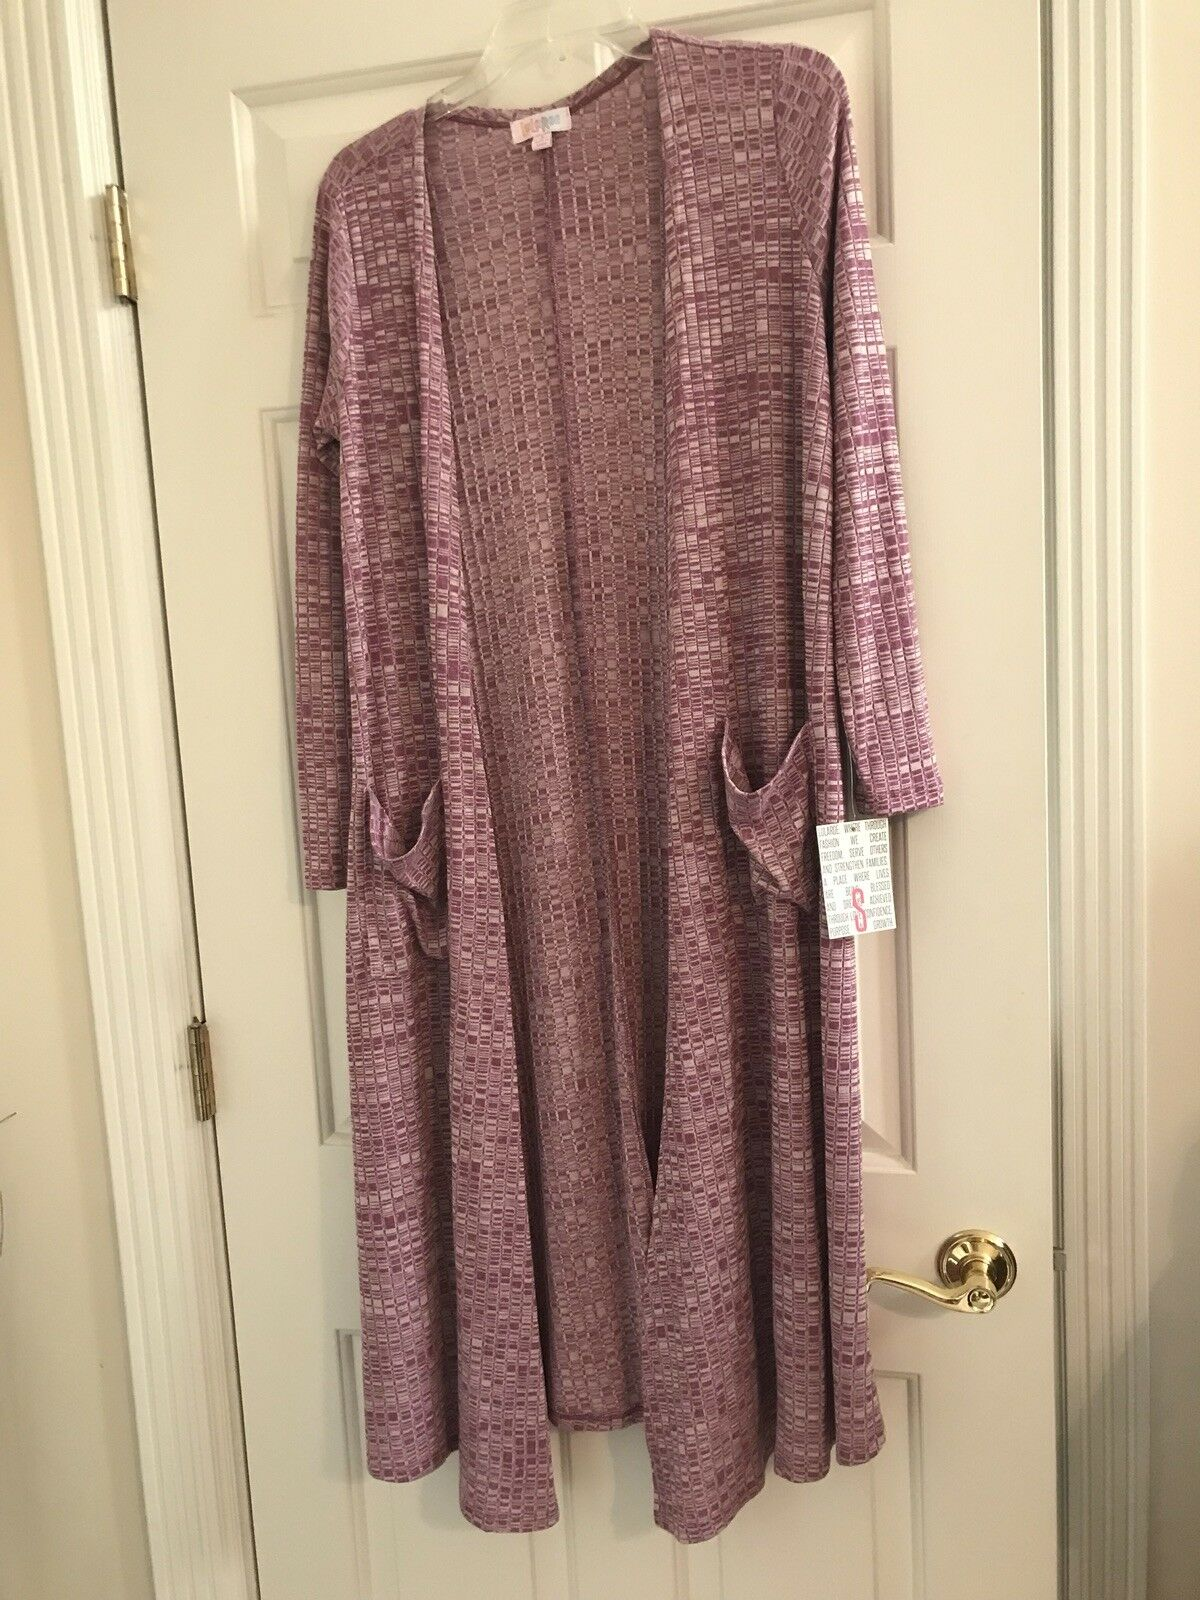 NWT LuLaRoe Small Sarah Duster Cardigan Mauve Pink Purple Stretchy